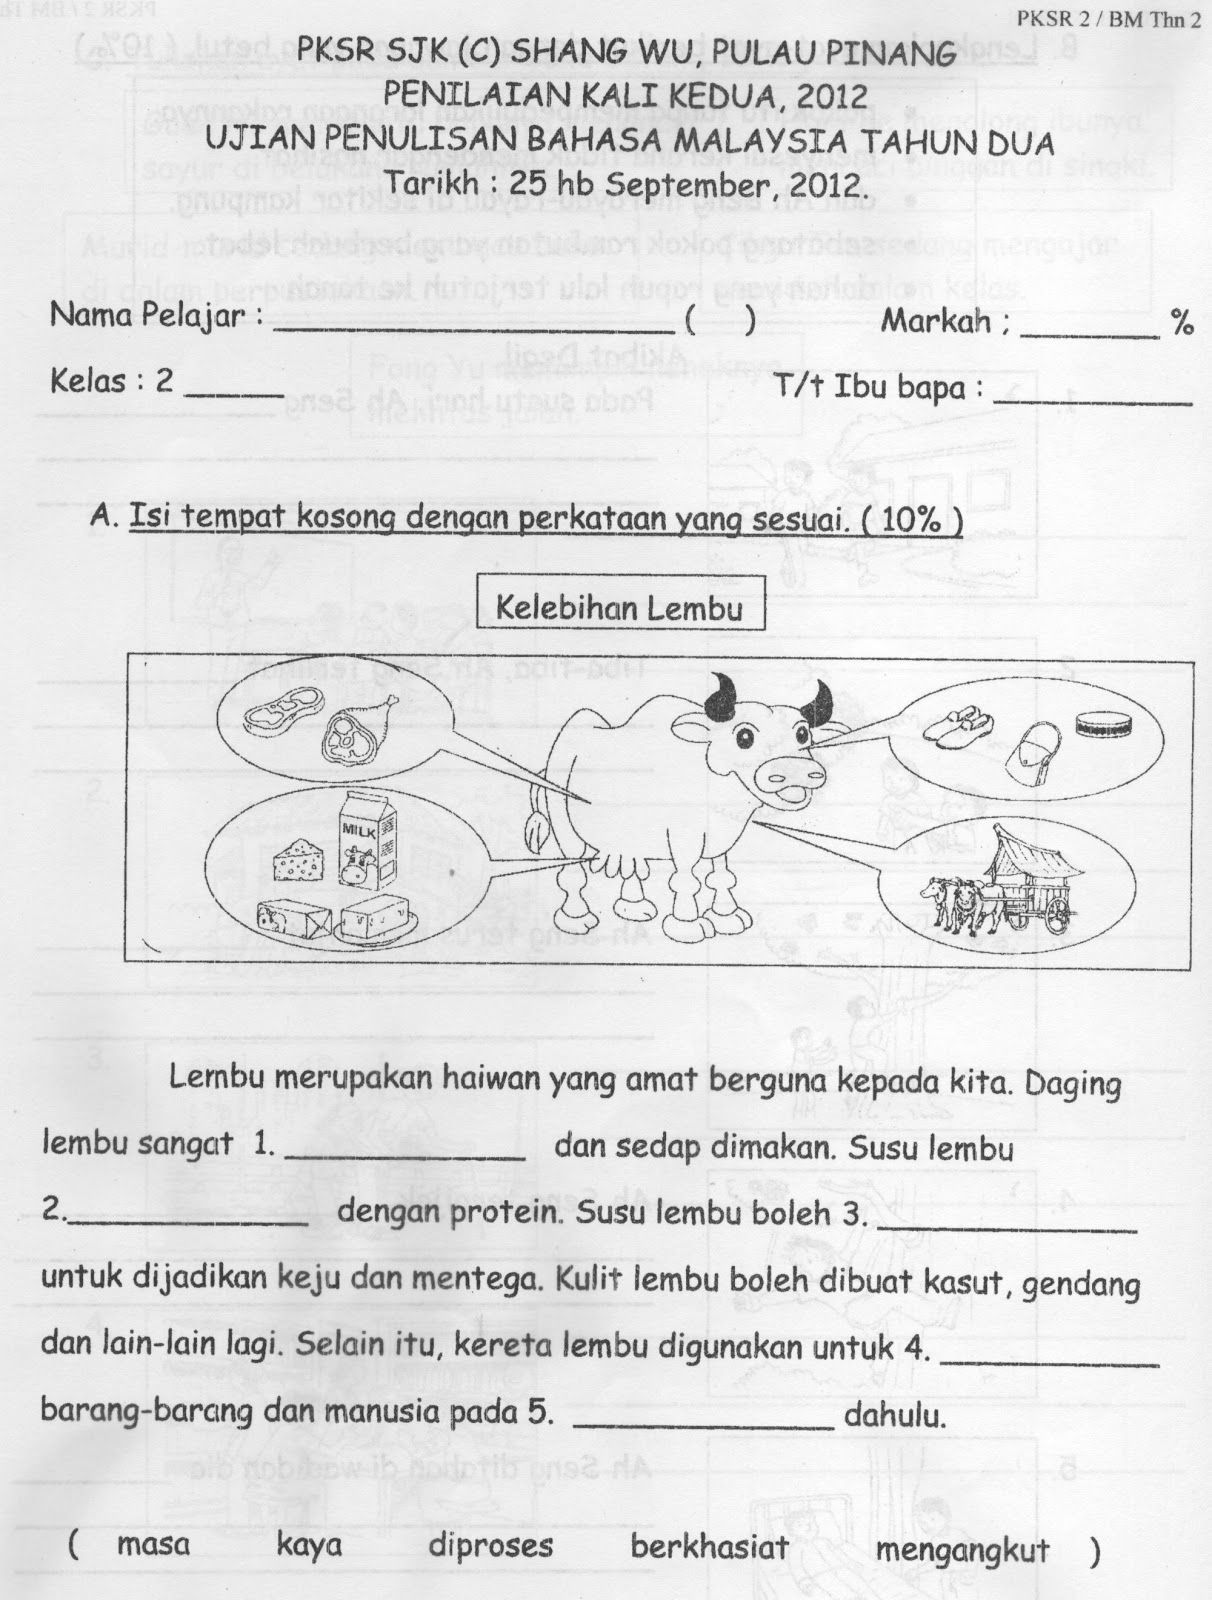 Image Result For Karangan Darjah 1